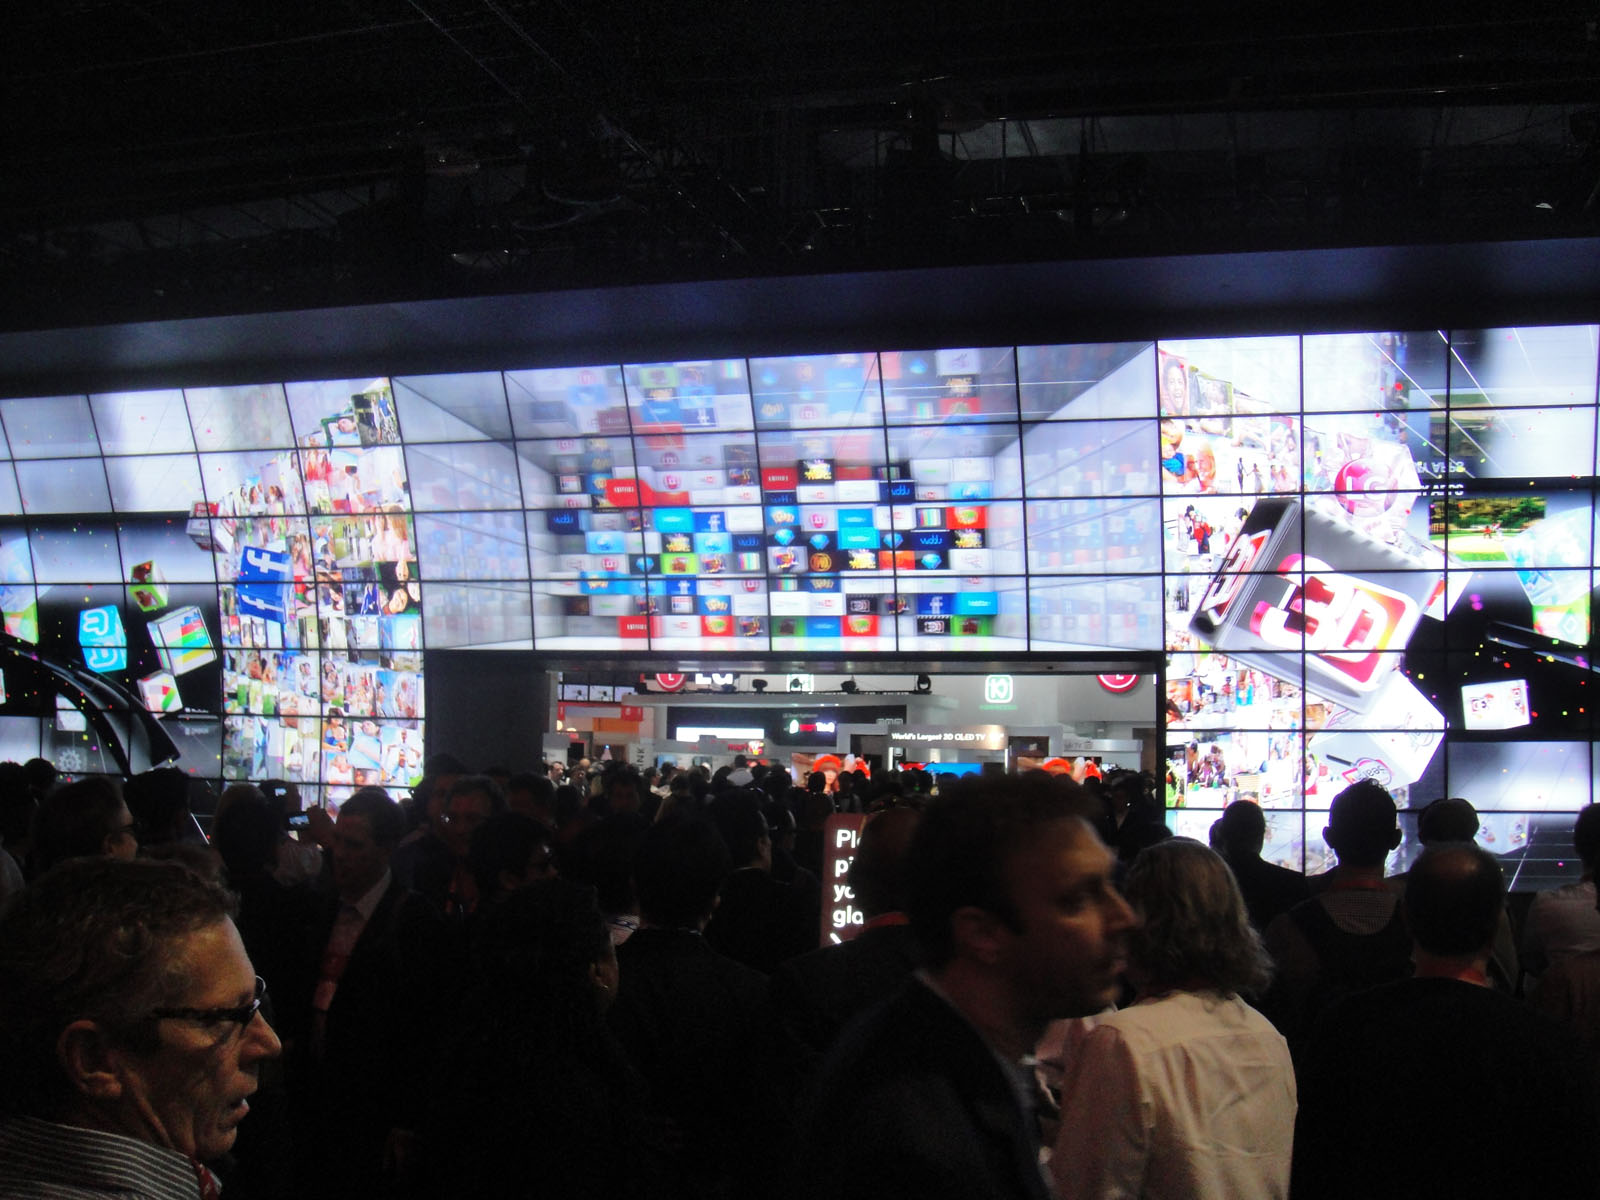 Video Walls at Tradeshows - CES 2012 LG